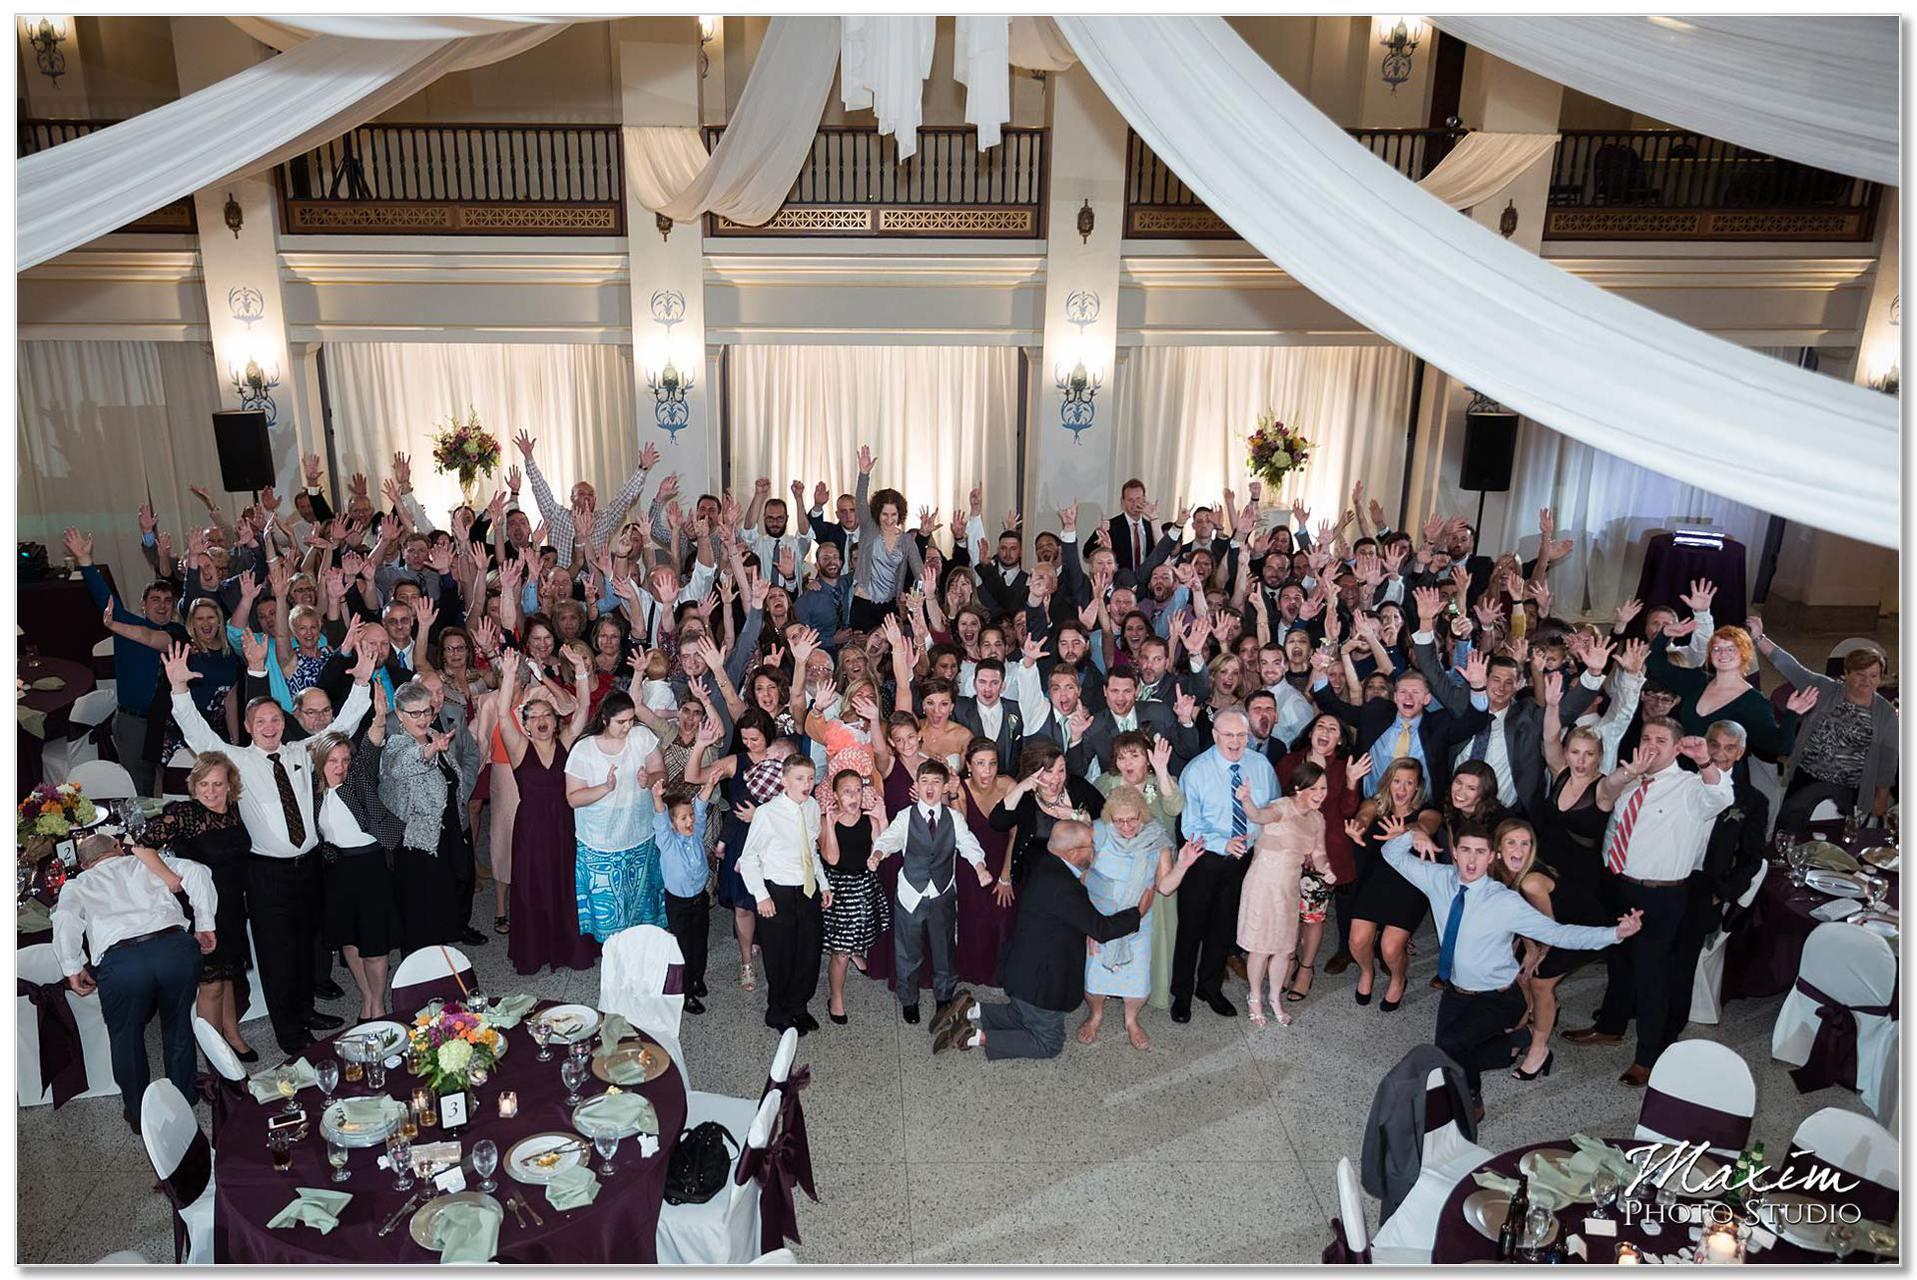 Masonic Center Dayton Ohio Wedding Reception Group Photo